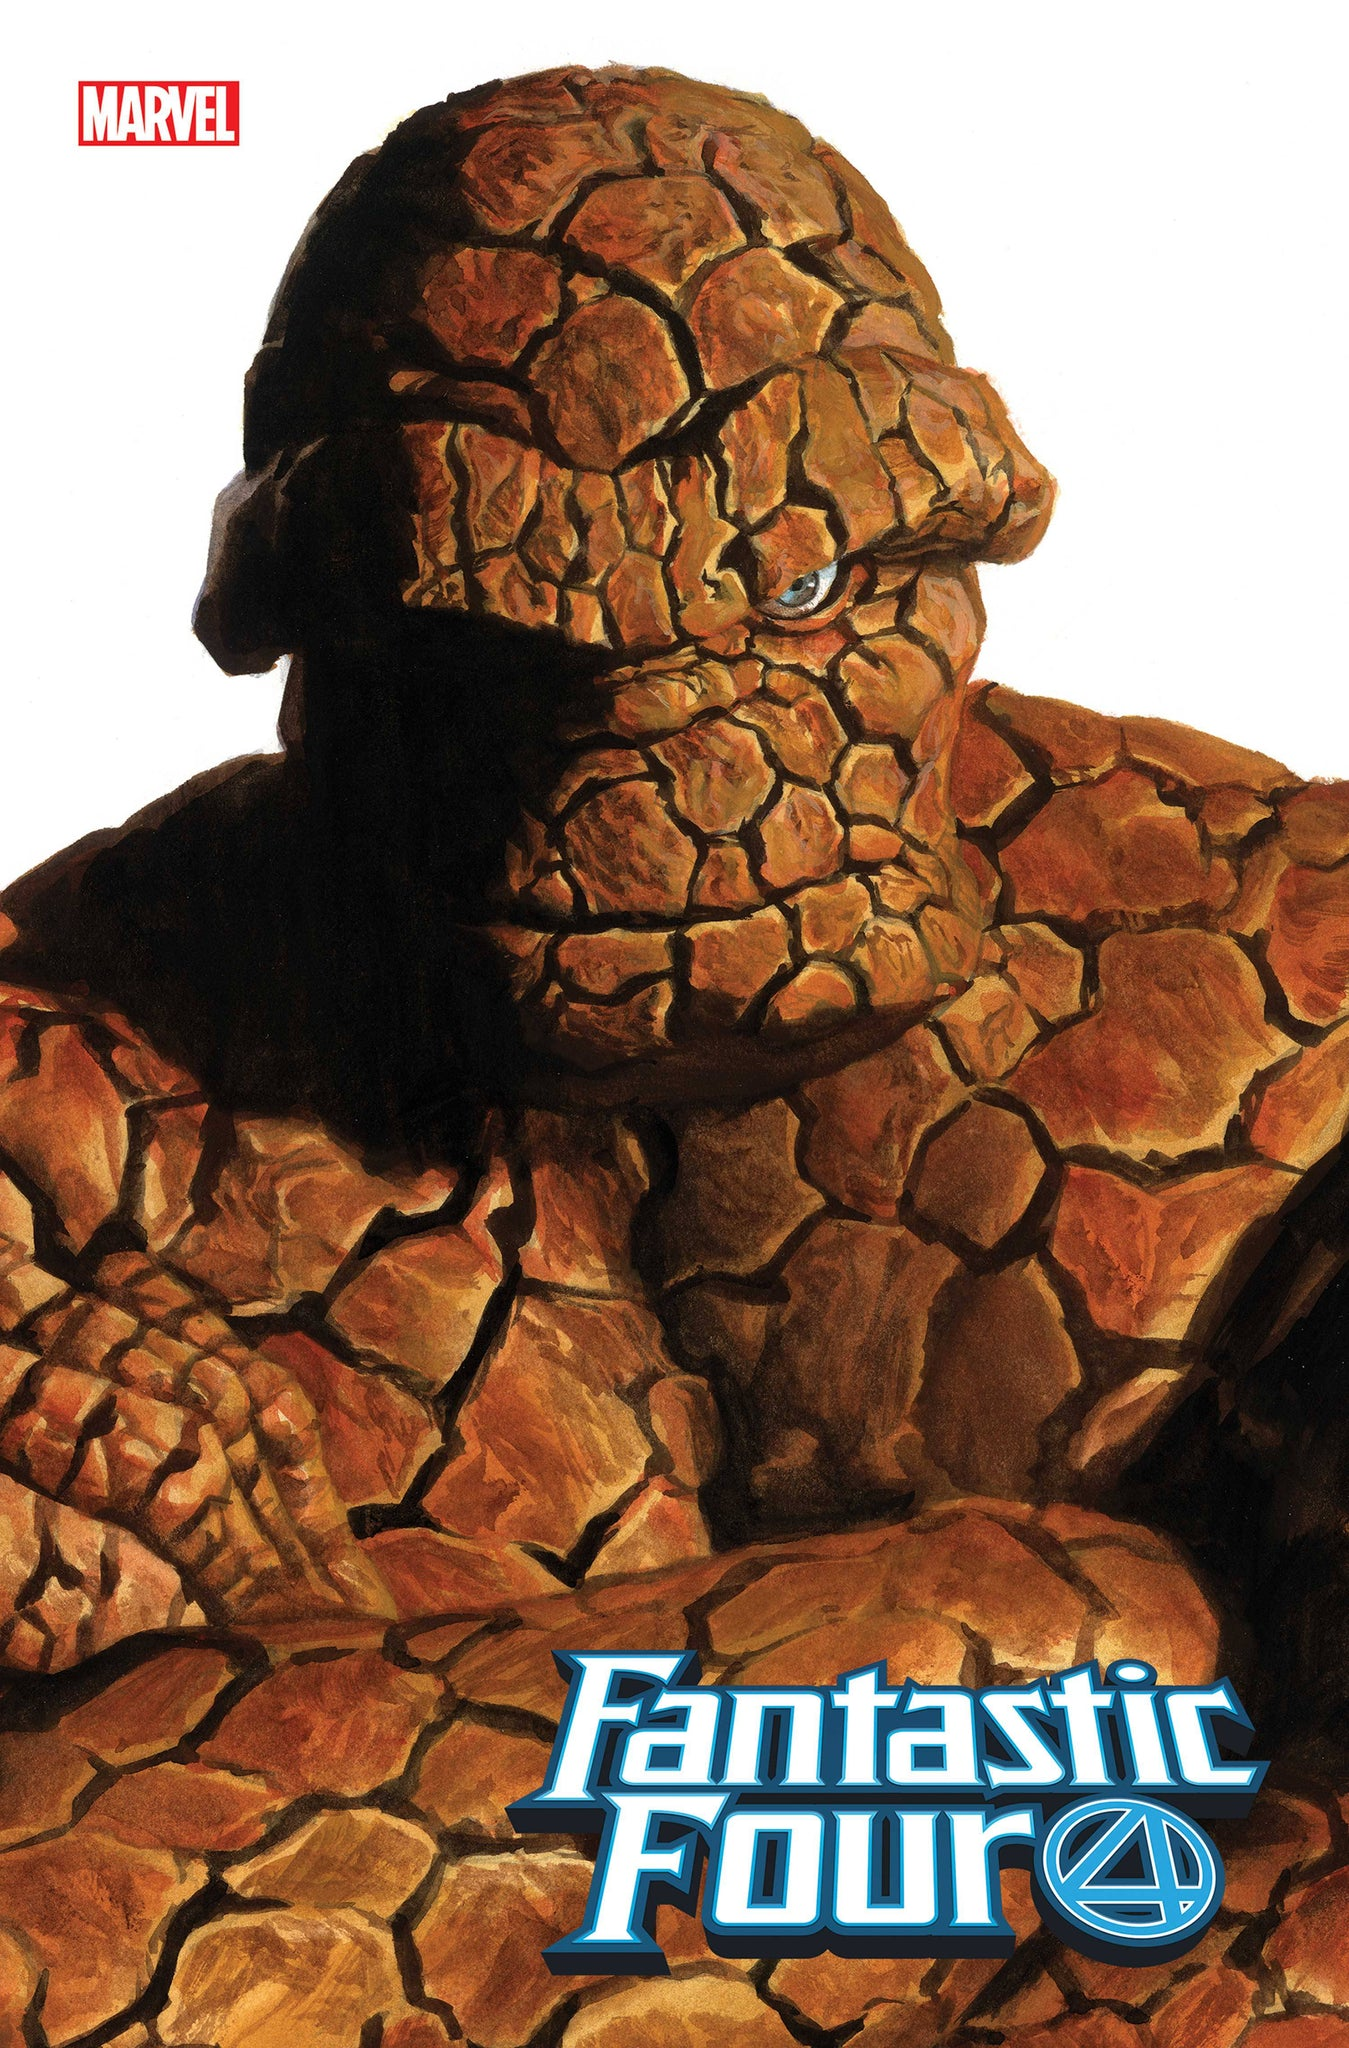 FANTASTIC FOUR #24 ALEX ROSS THING TIMELESS VAR